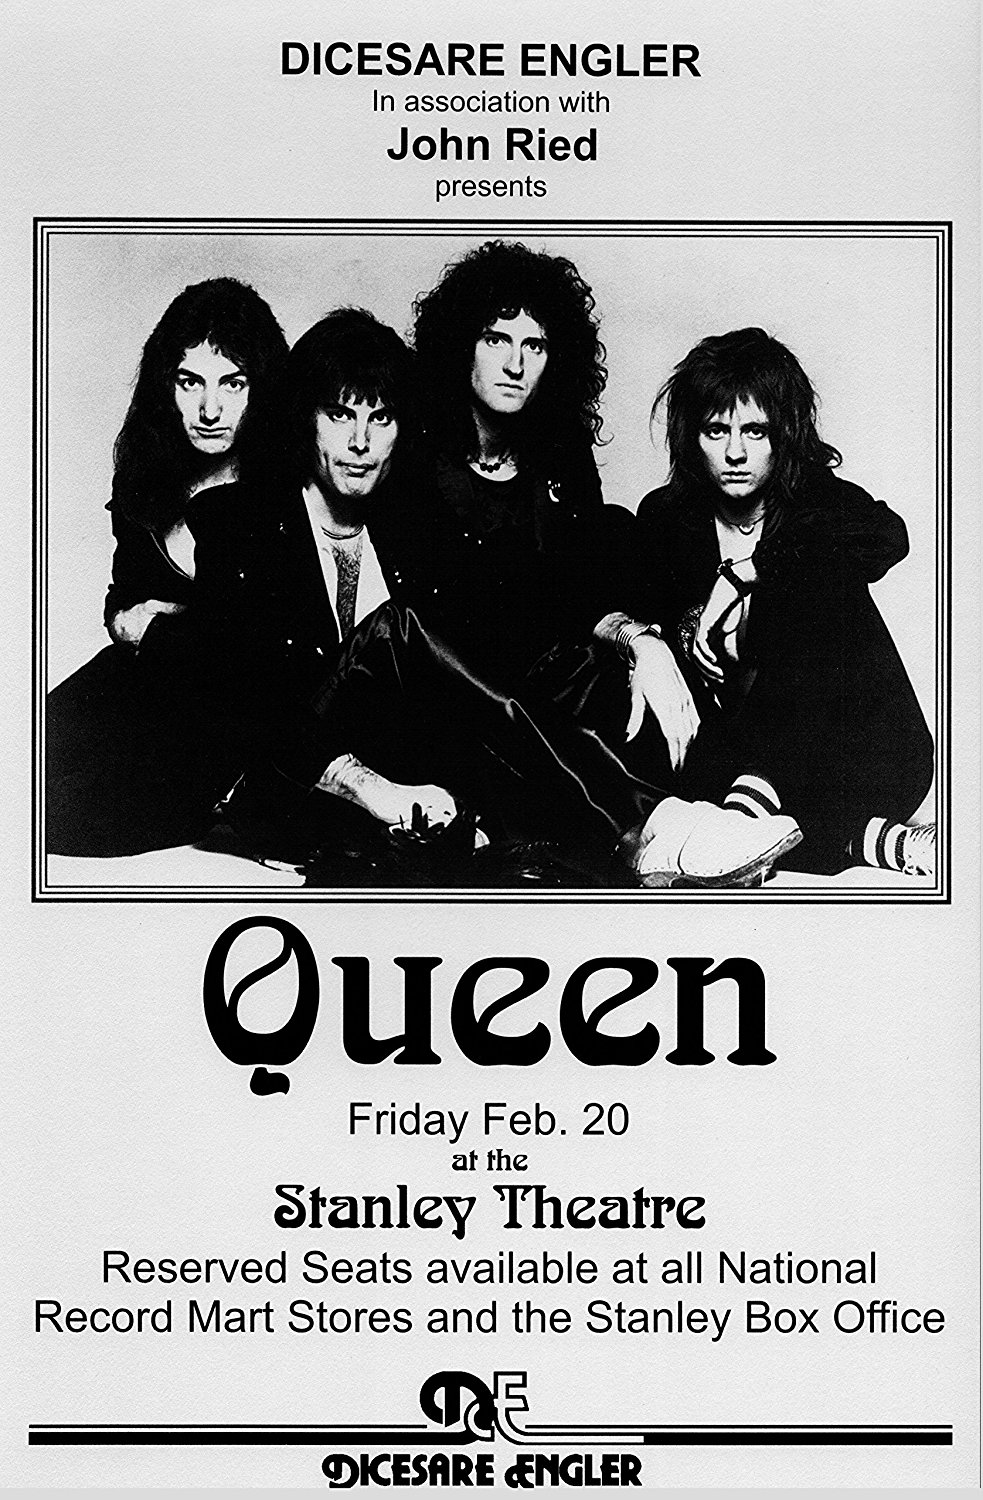 Queen A Night at the Opera Retro Art Print — Poster Size — Print of Retro Concert Poster — Features Freddy Mercury, Brian May, Roger Taylor and John Deacon.